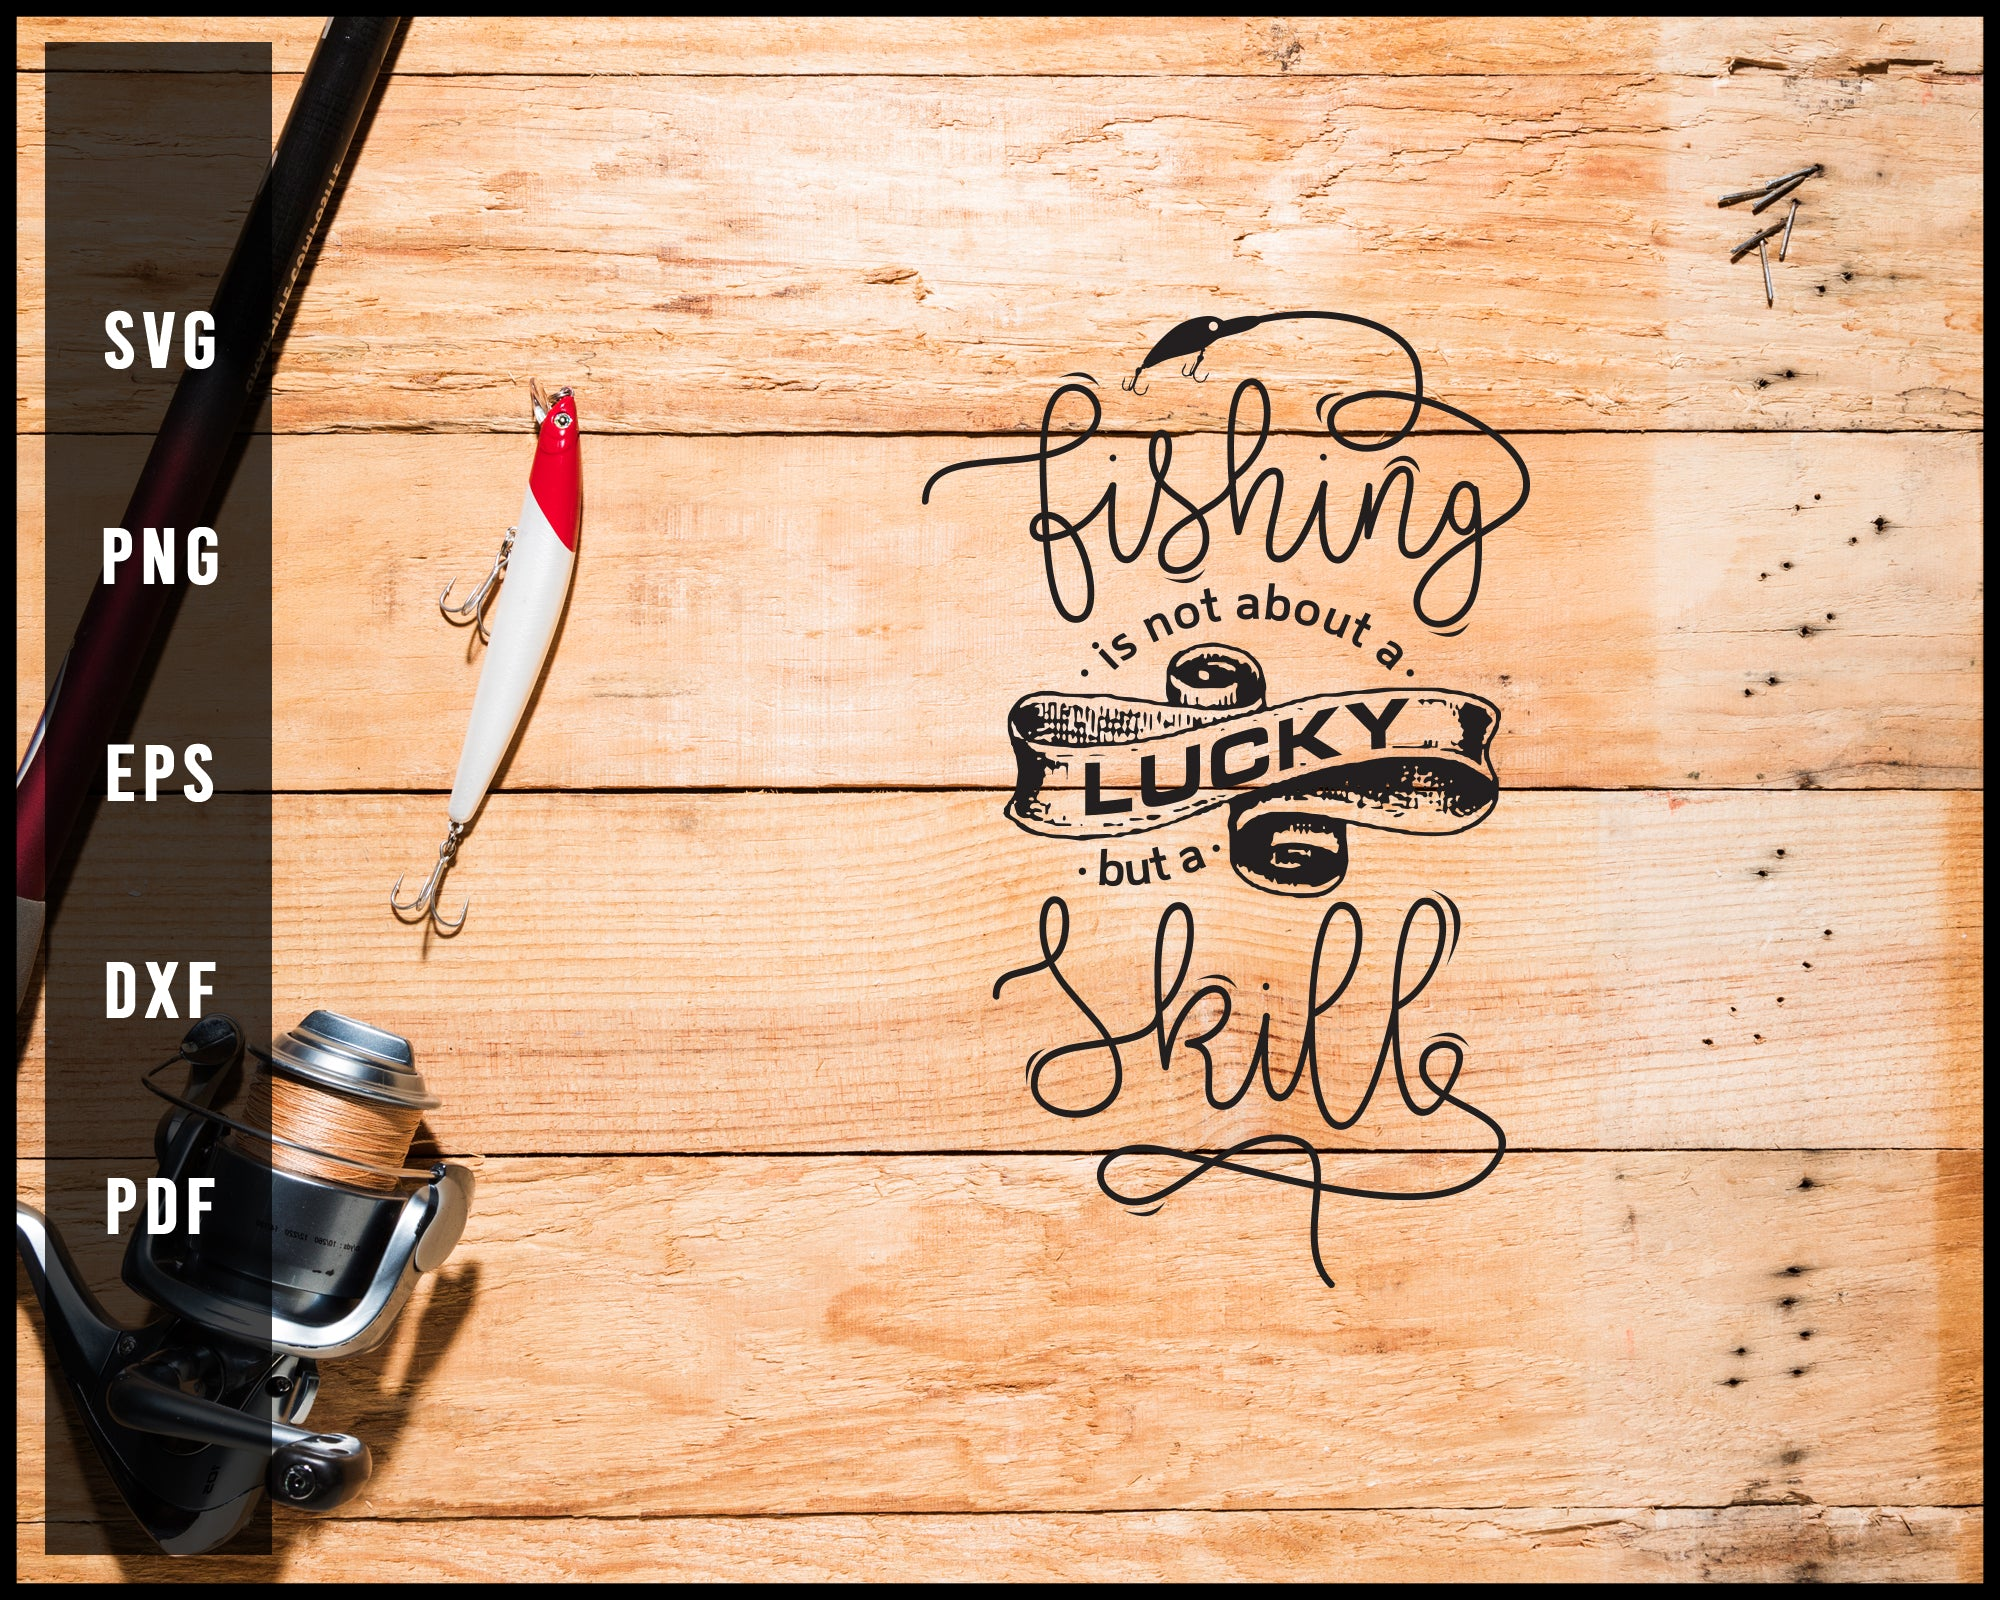 Fishing Is Not About A Lucky But A Skill svg png Silhouette Designs For Cricut And Printable Files